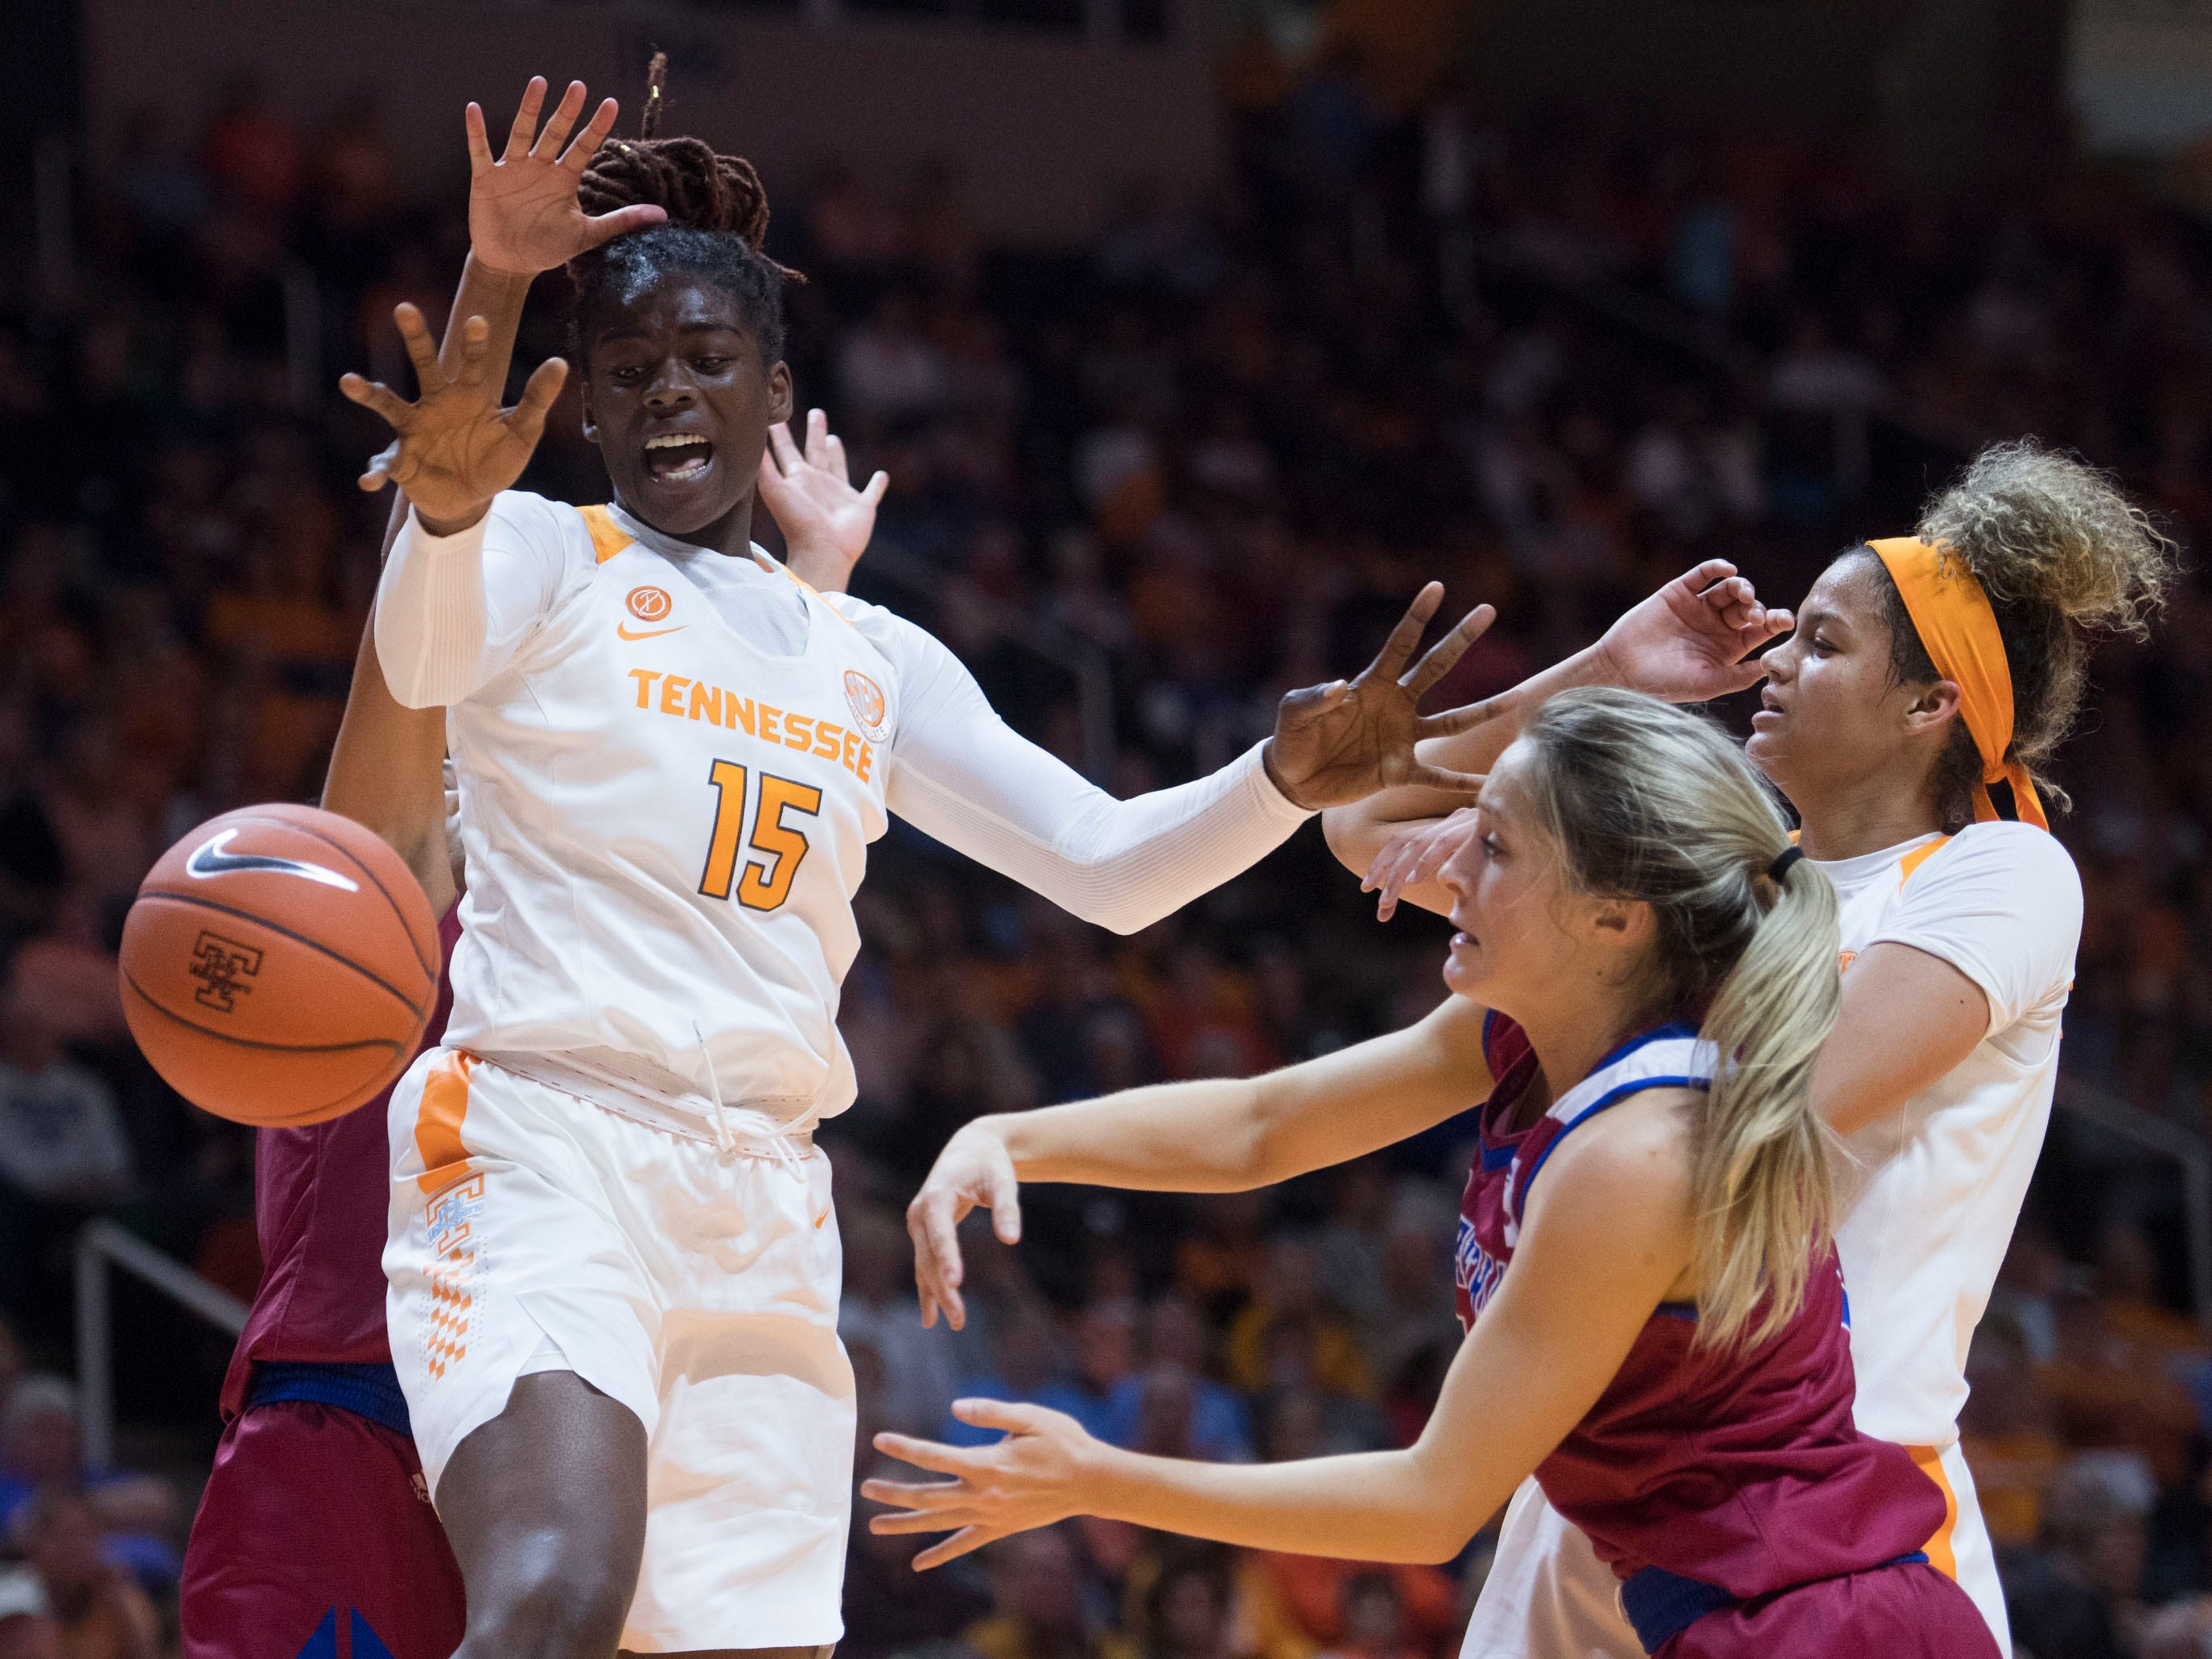 The ball is knocked away from Tennessee's Cheridene Green (15) during the season-opener with Presbyterian on Sunday, November 11, 2018.